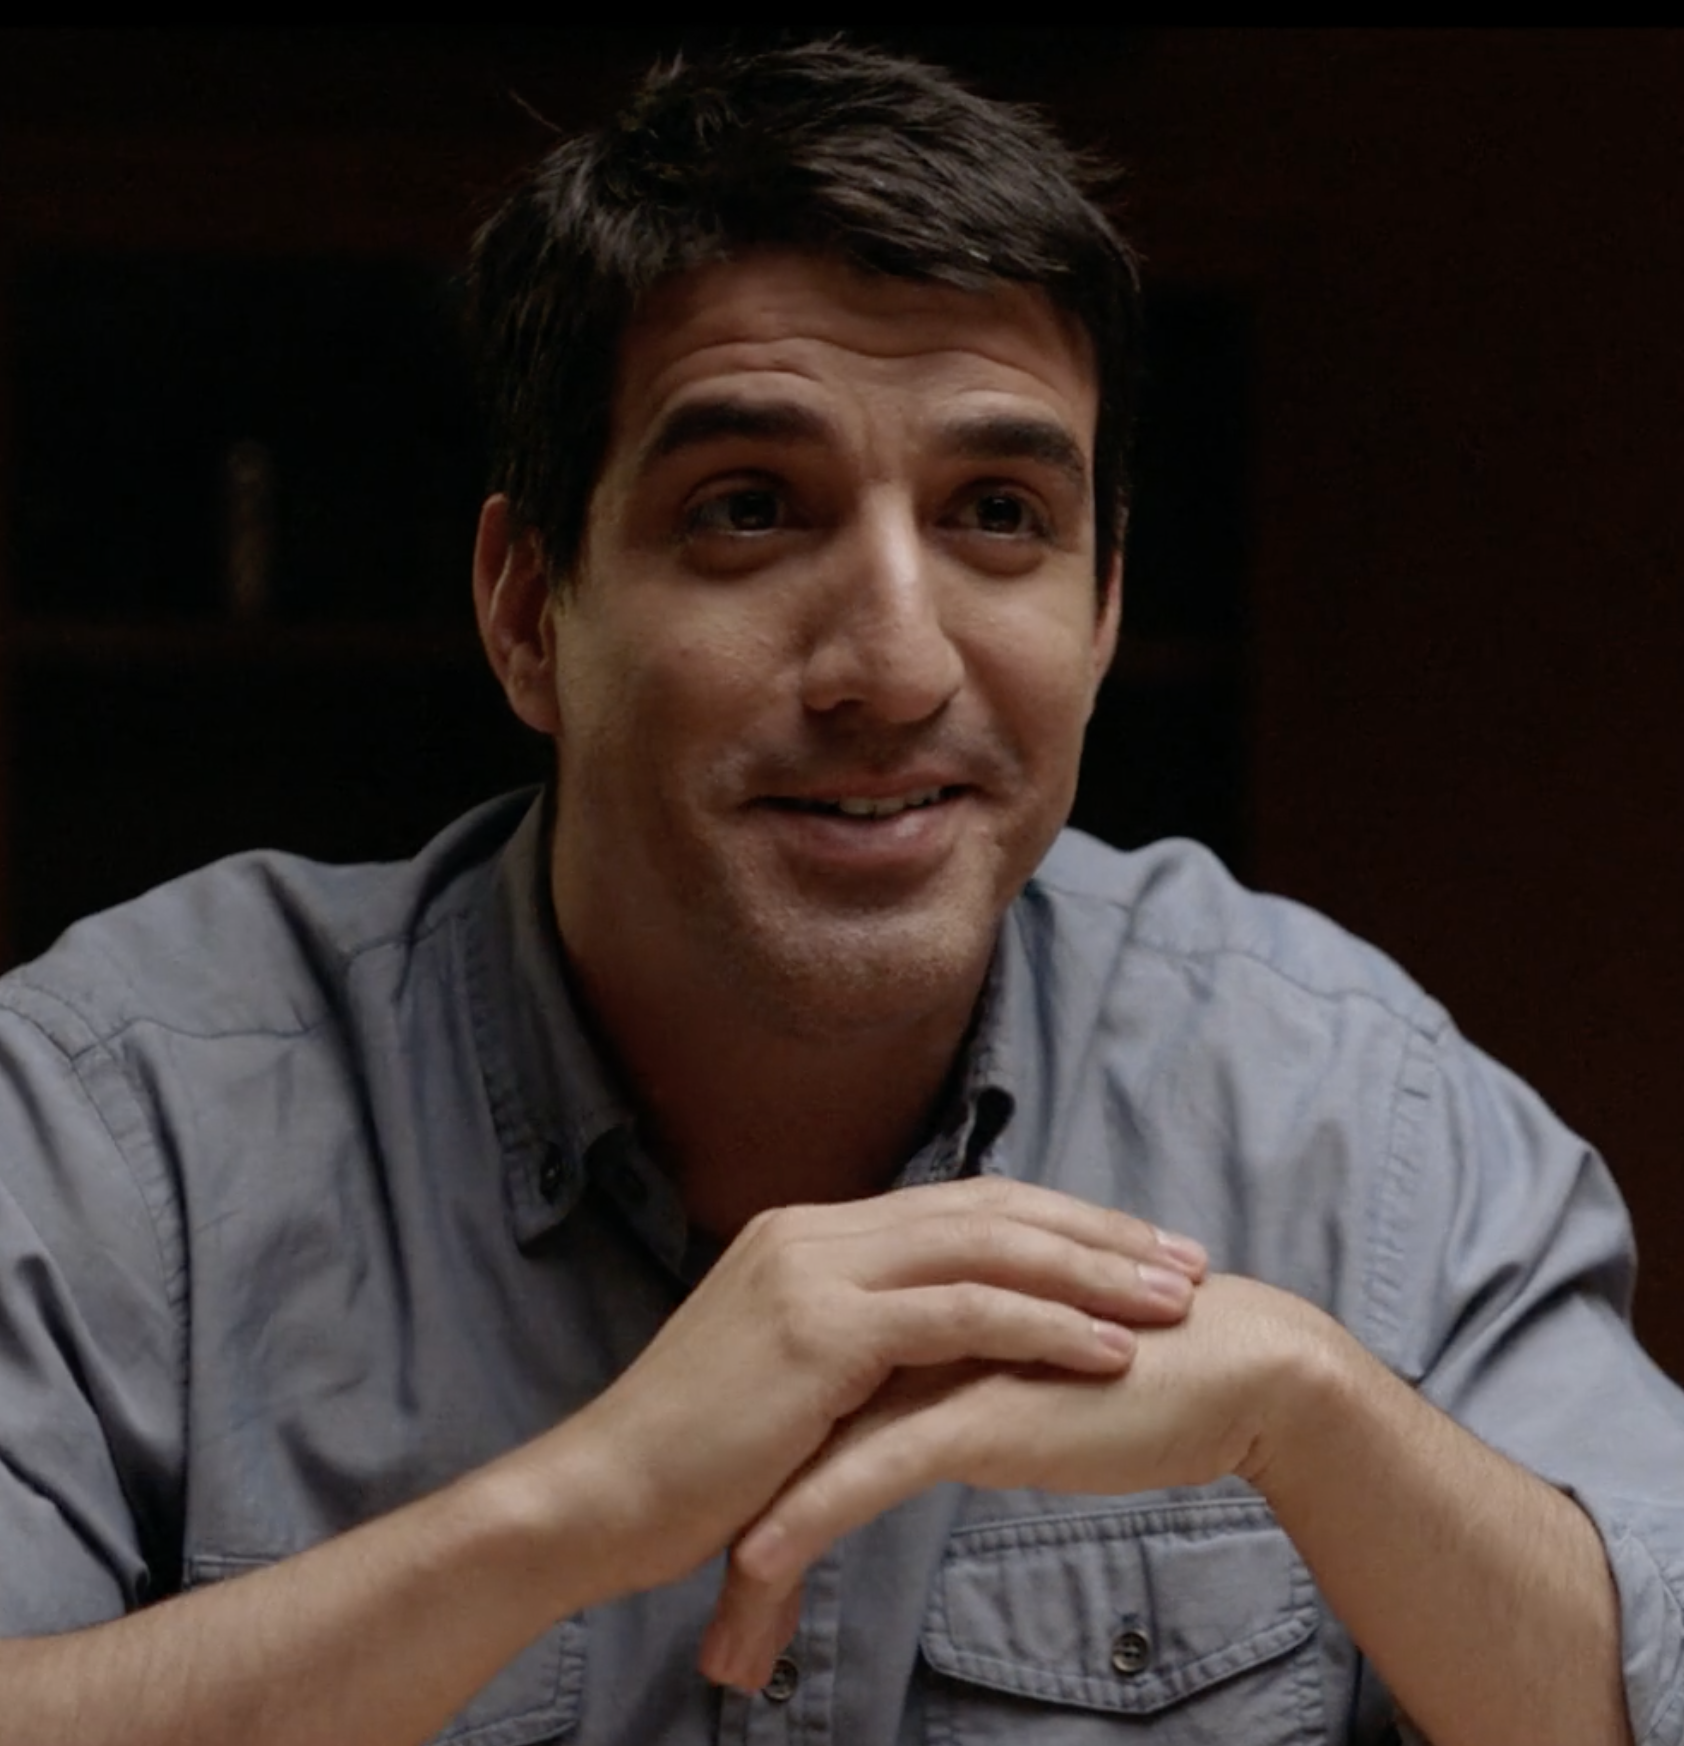 Ohad Bitton as Roey